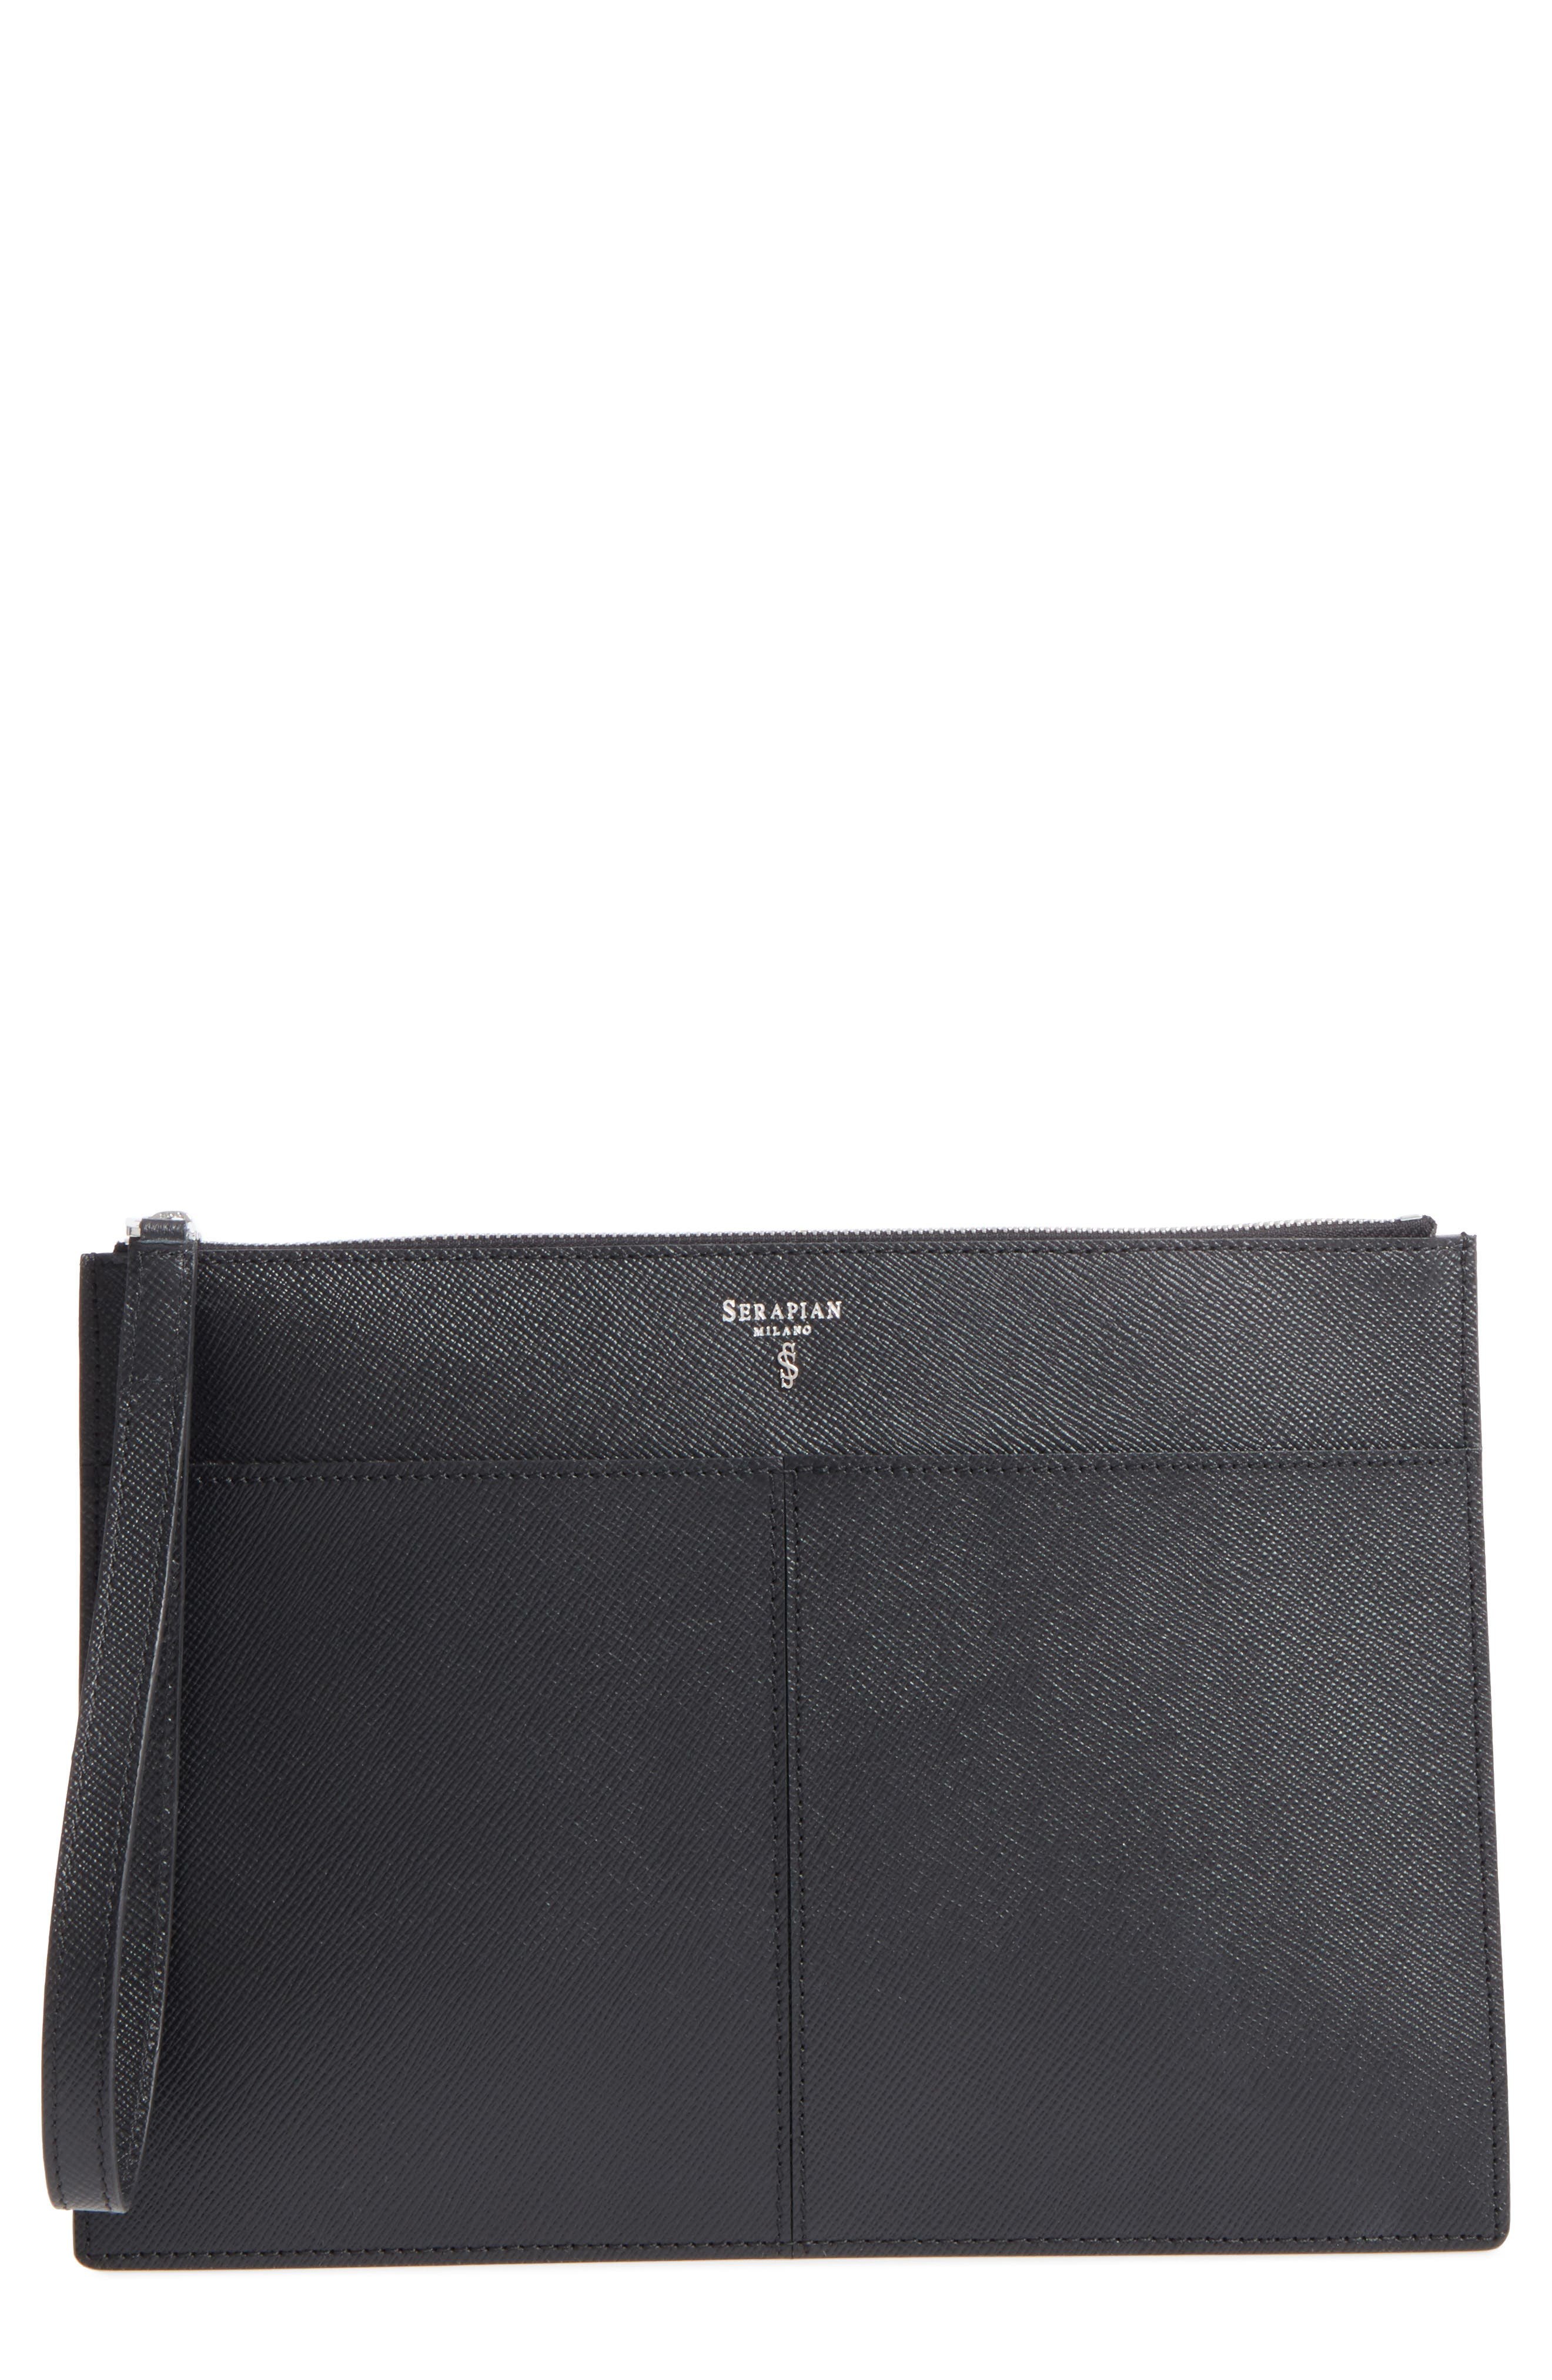 Evolution Leather Clutch,                             Main thumbnail 1, color,                             001